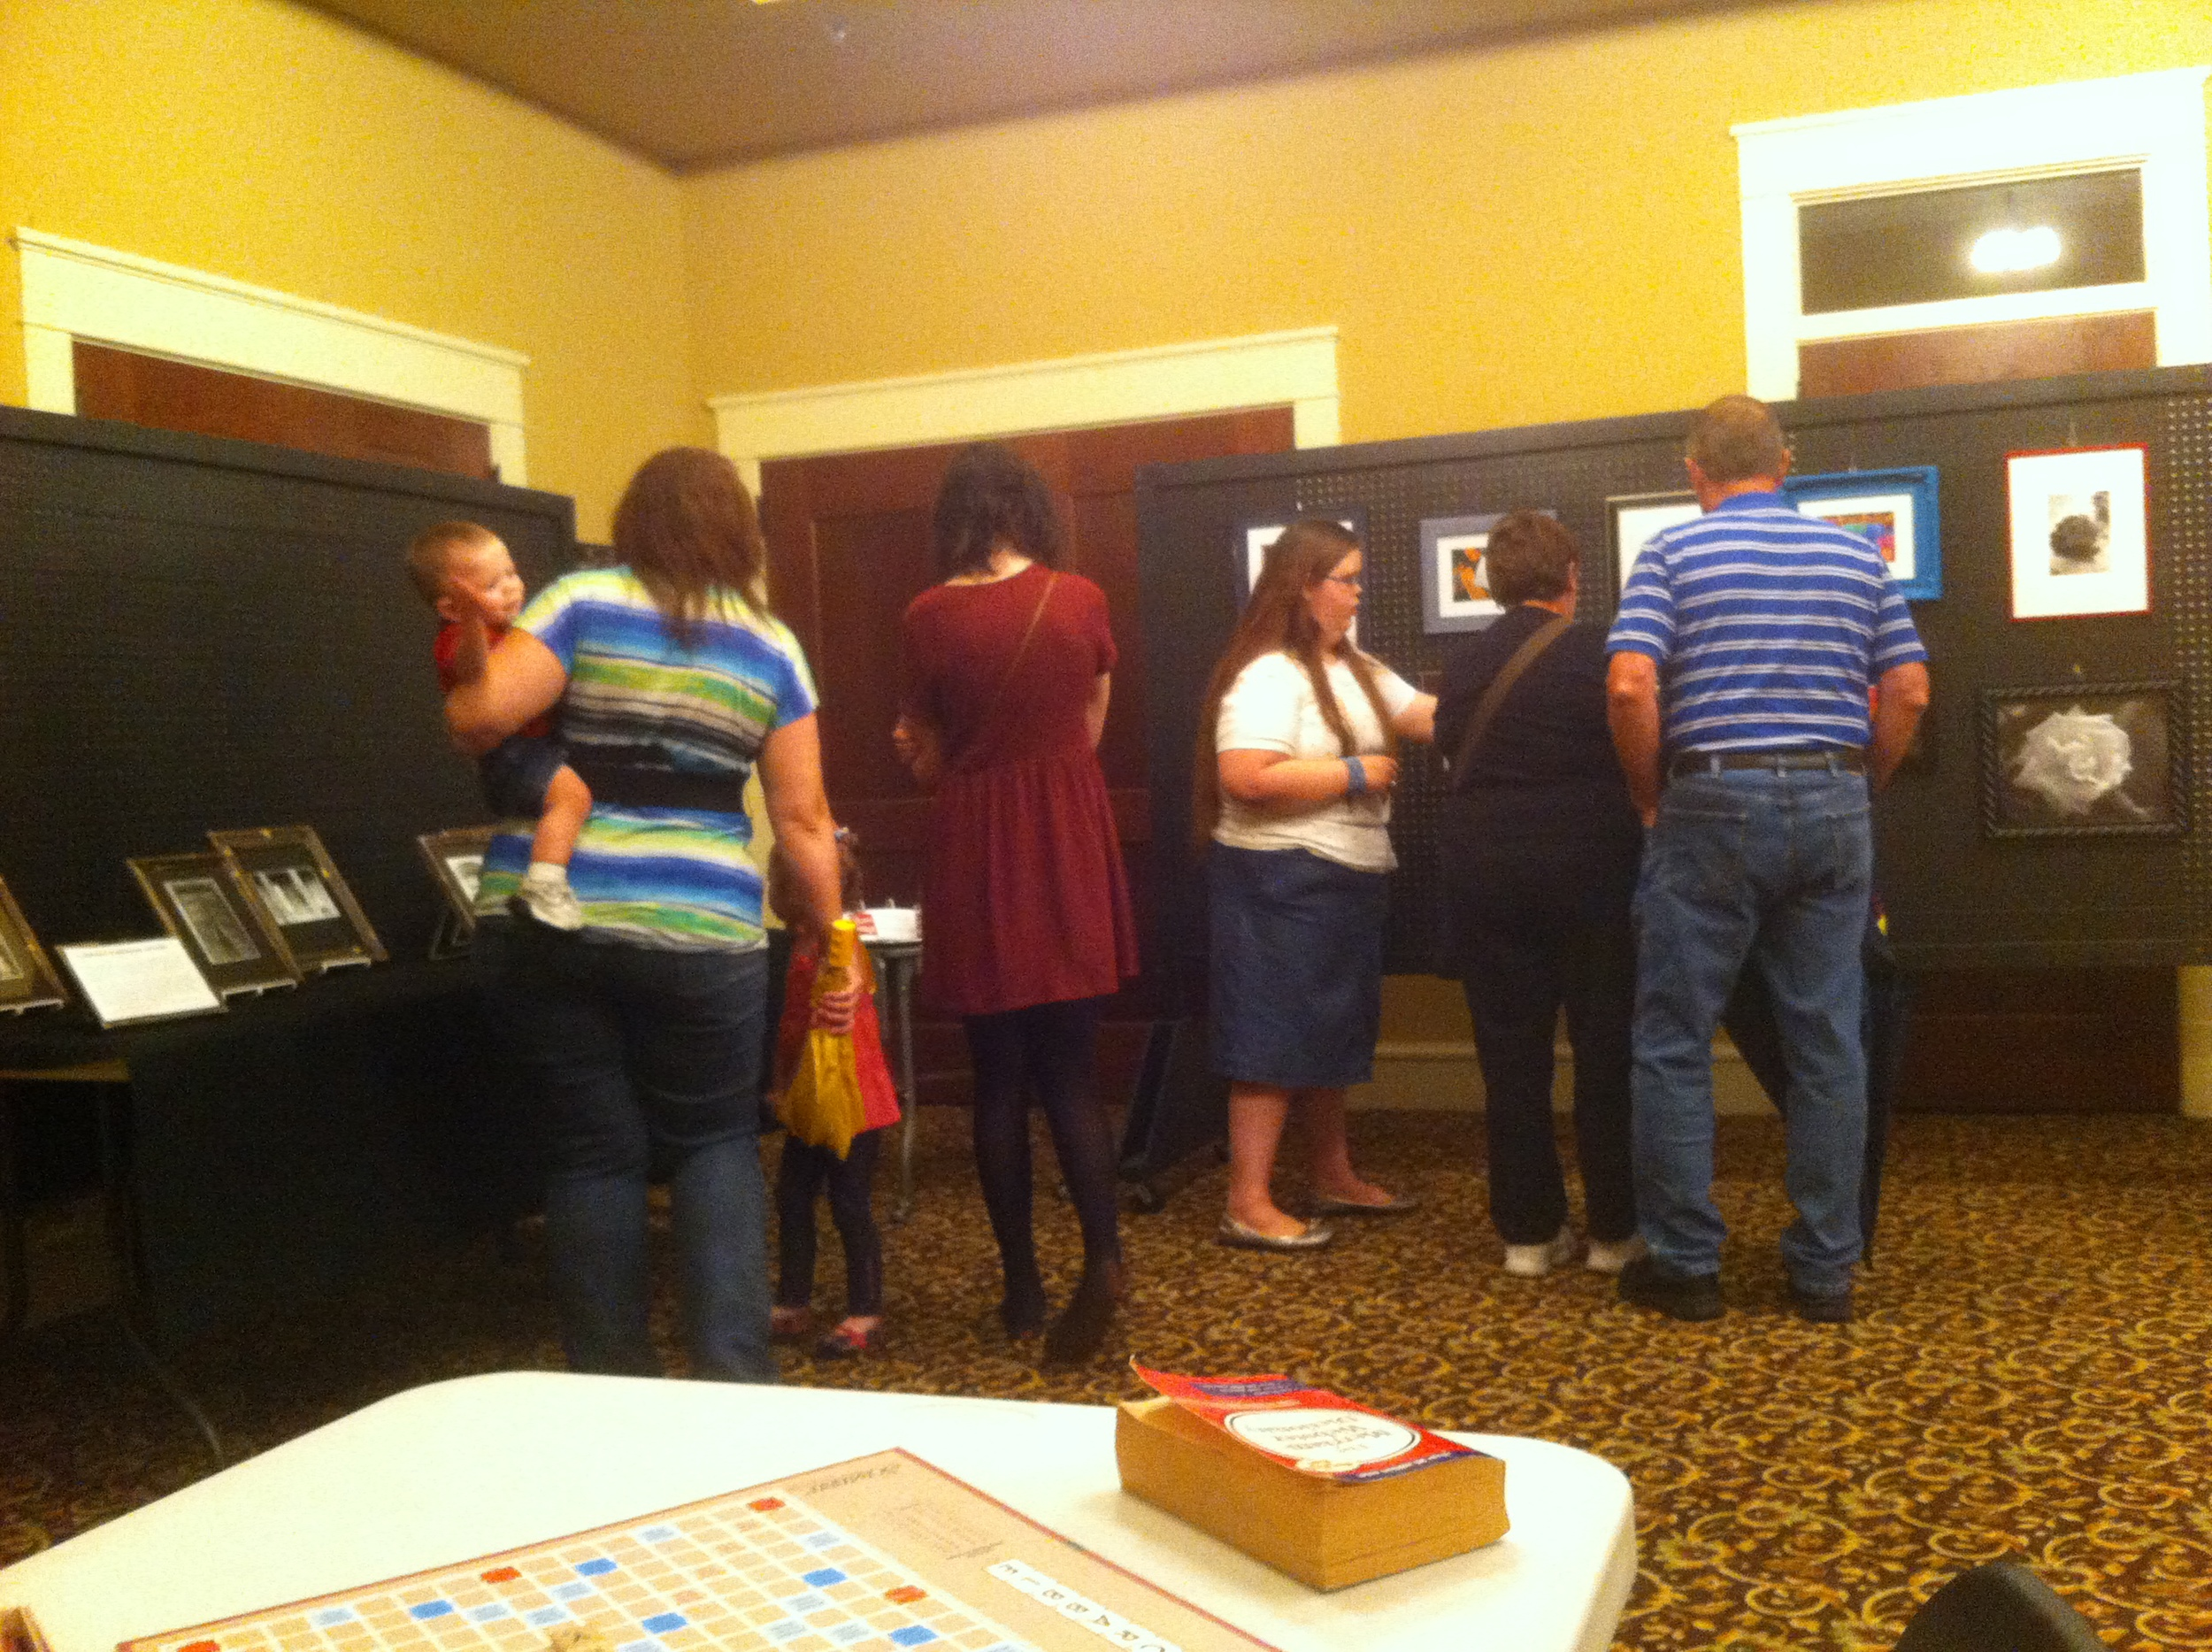 Even though it was a rainy night, the gallery walk attendance at the museum was about 70 people.